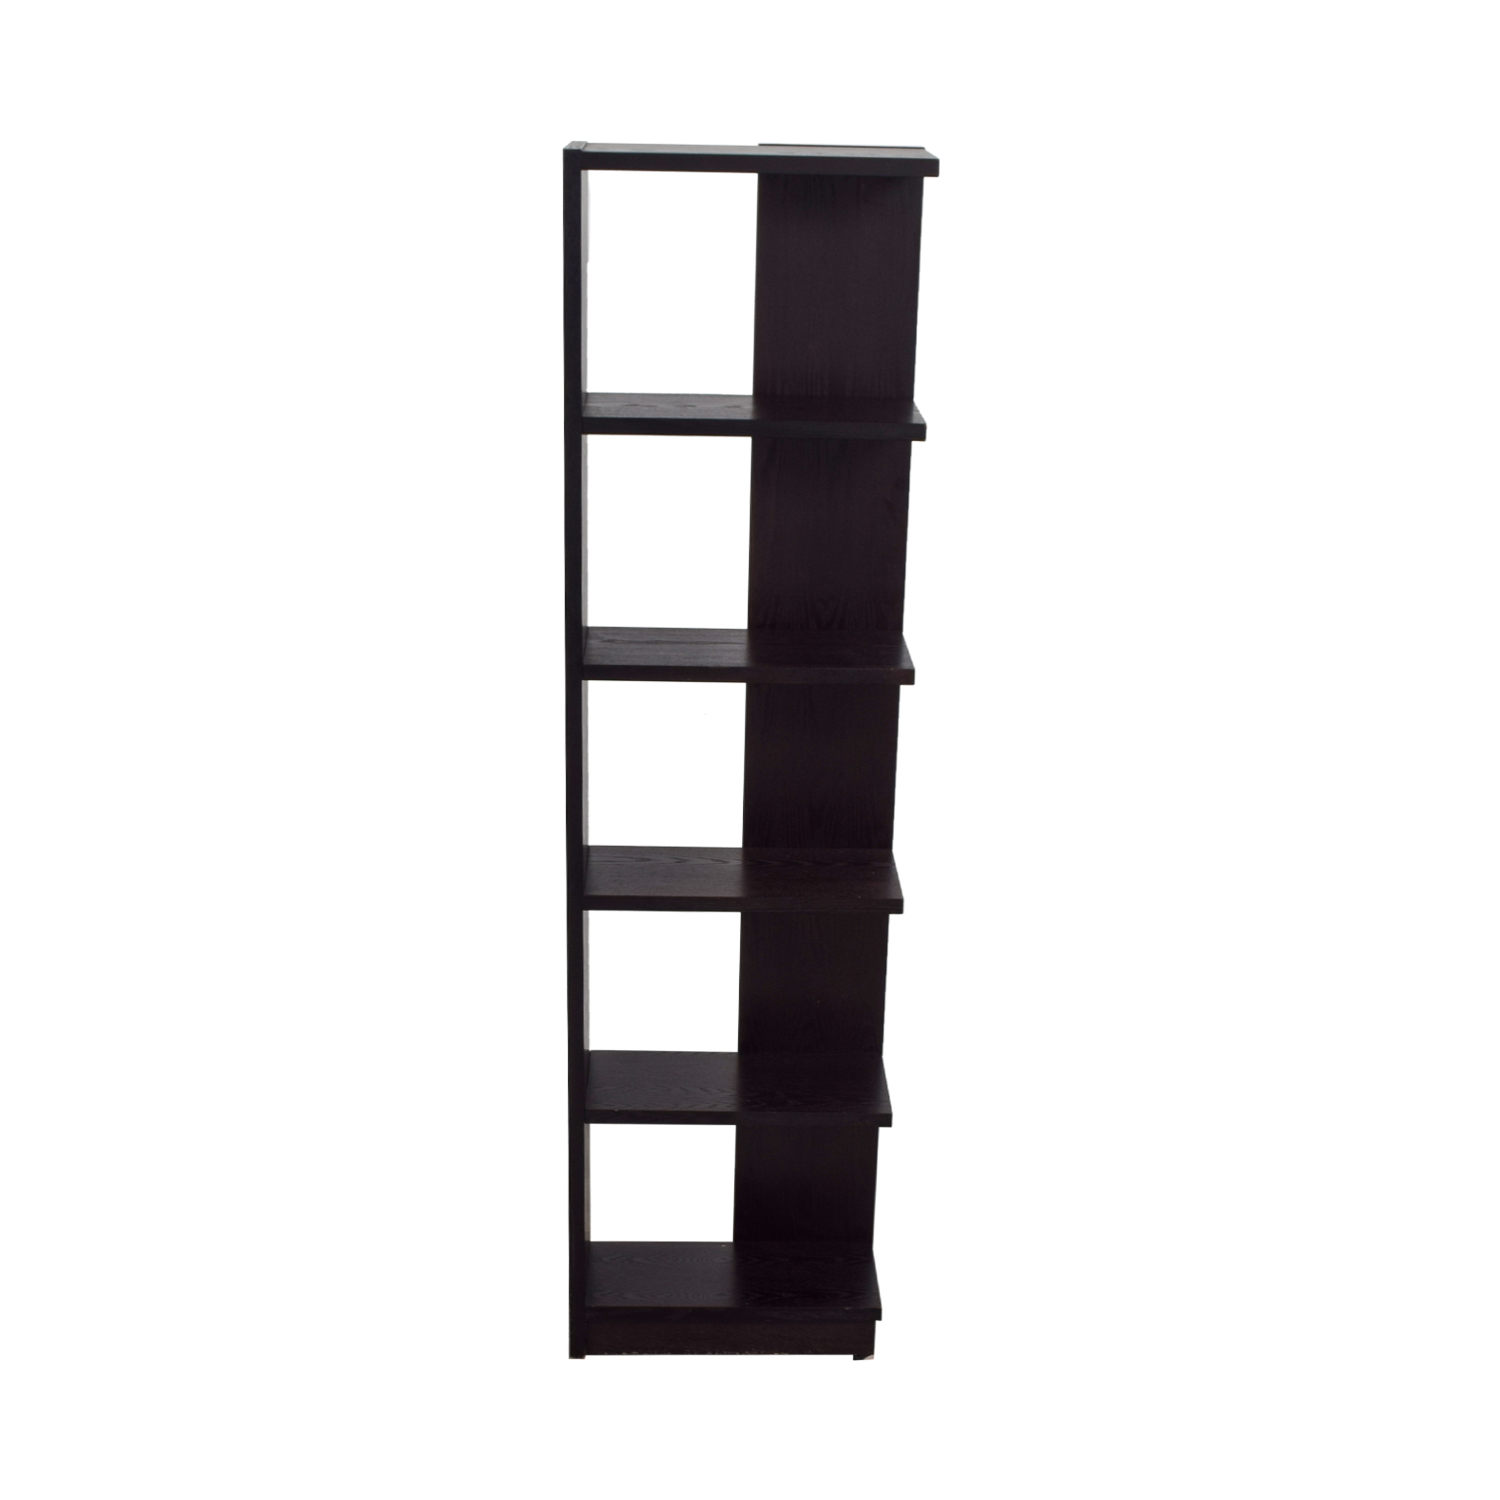 shop Crate & Barrel Crate & Barrel Asymmetric Bookcase online